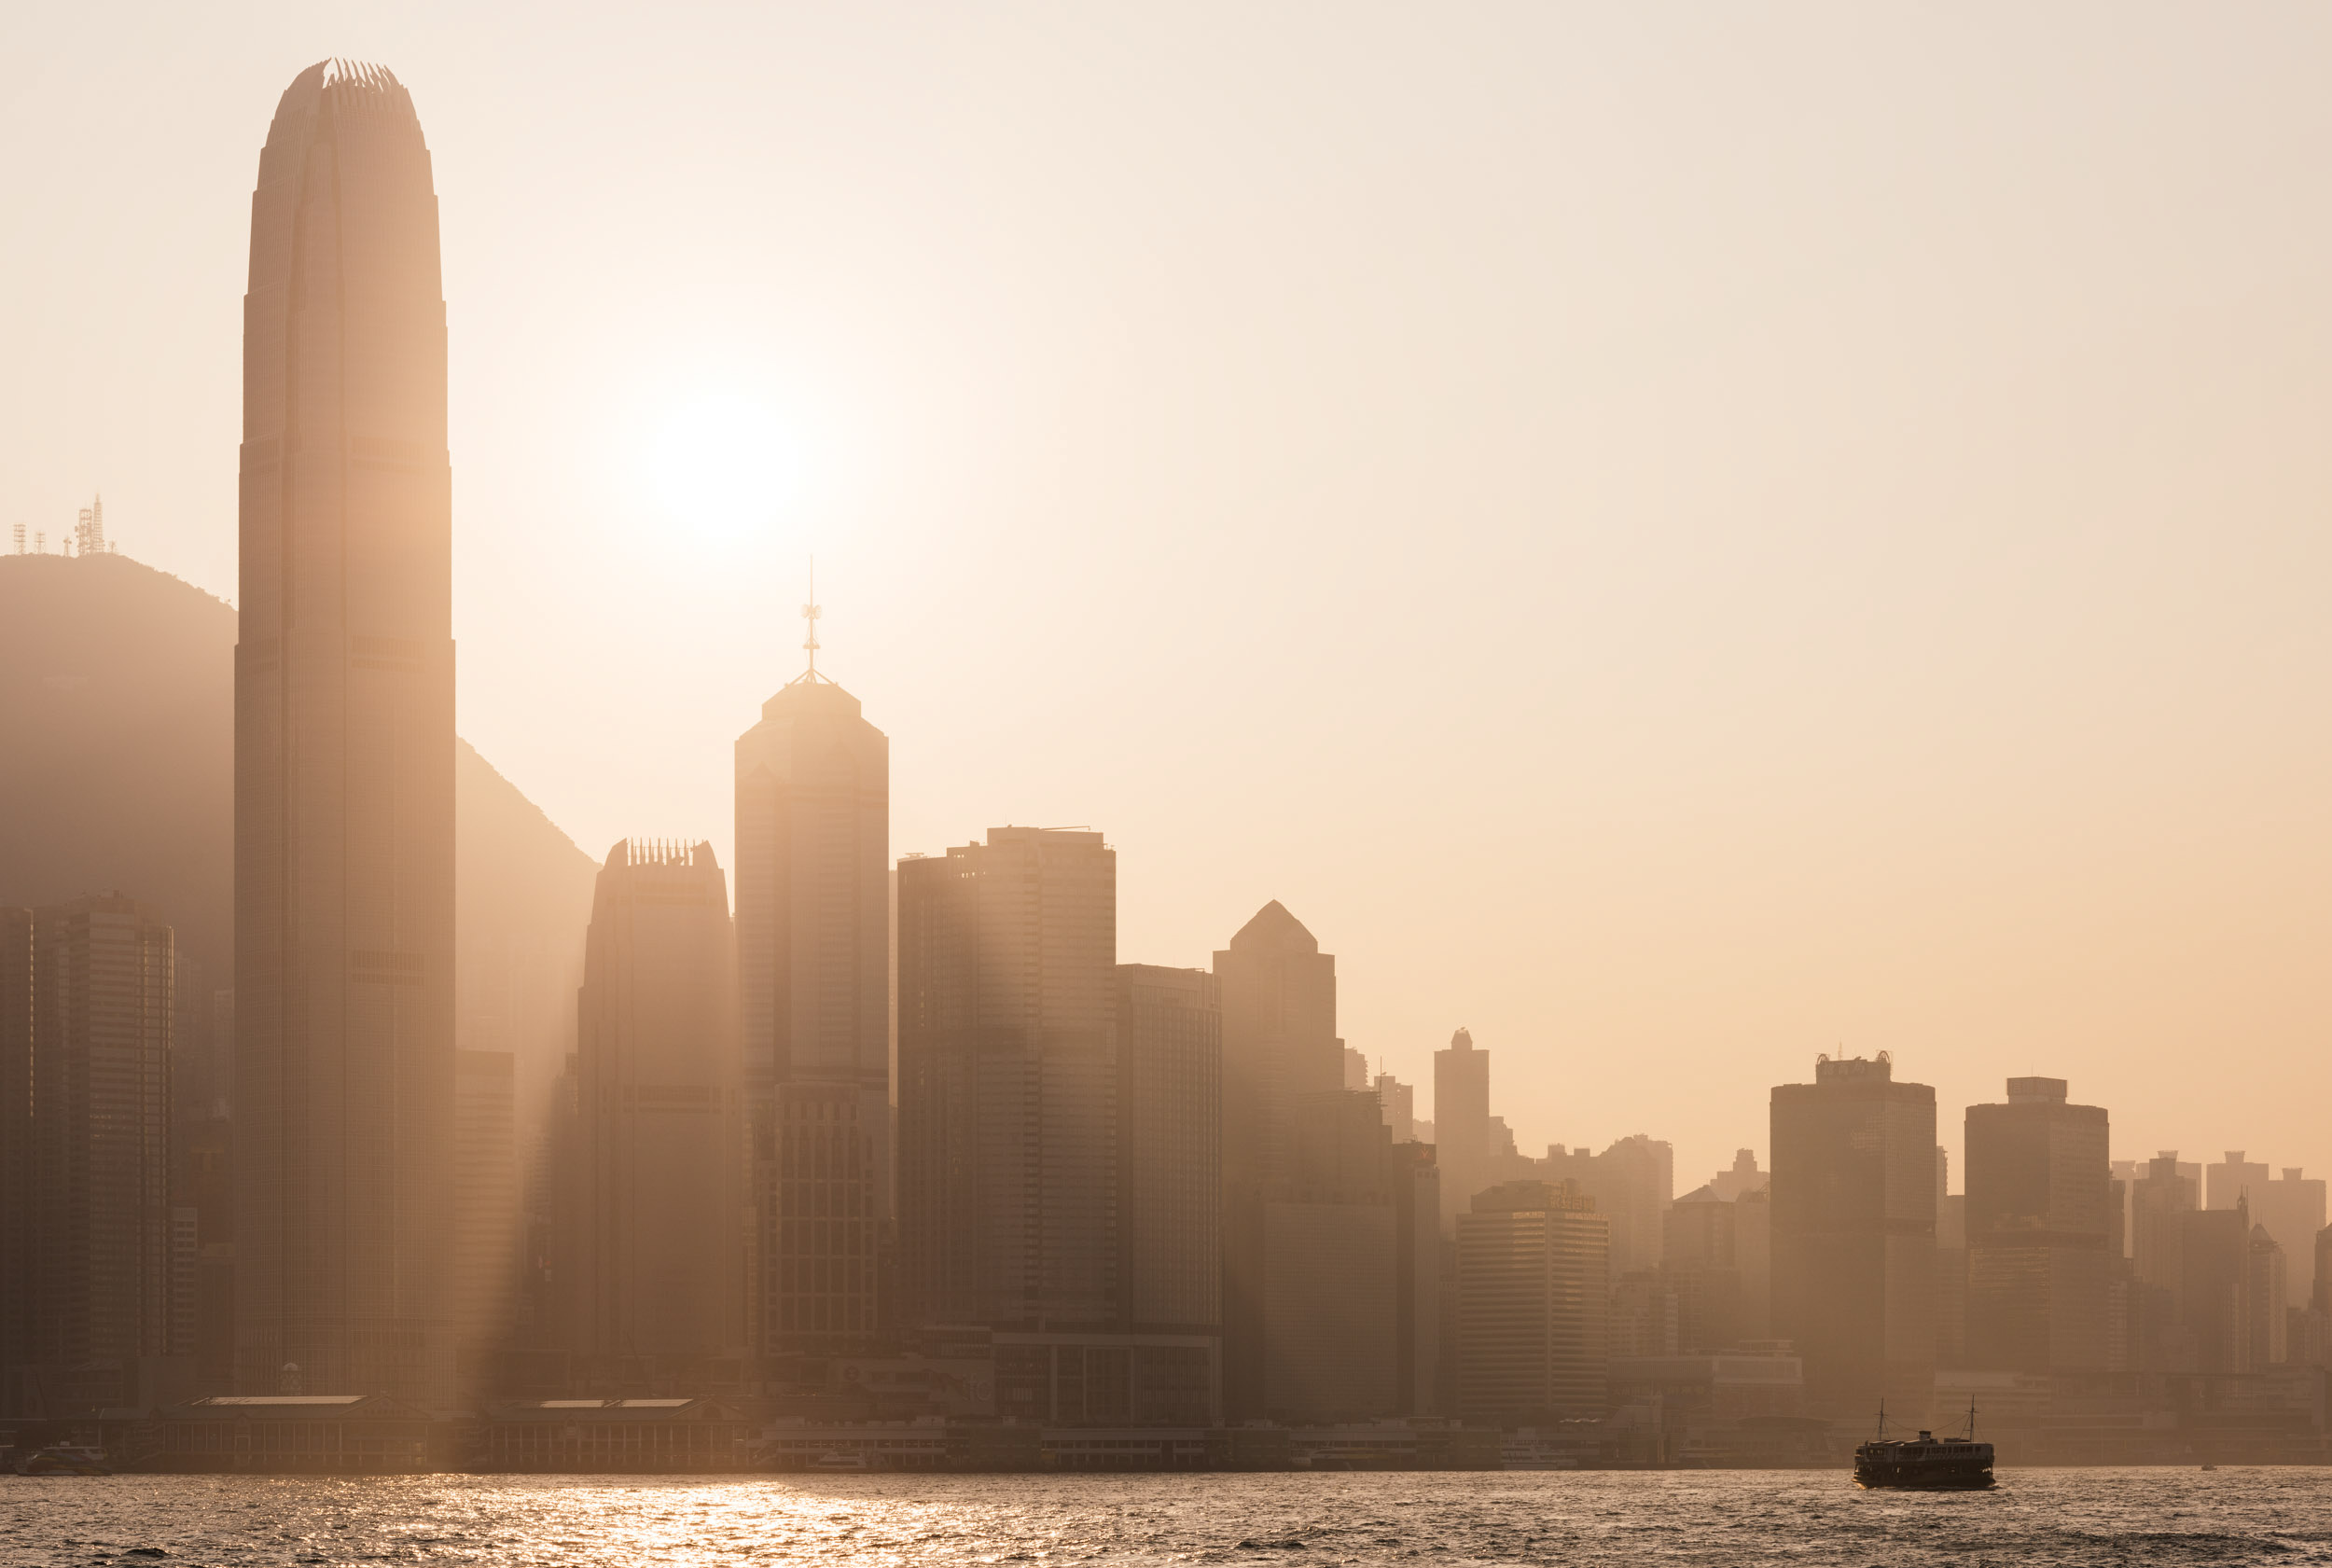 ifc-building-architecture-skyline-horizon-high-rise-hong-kong-china